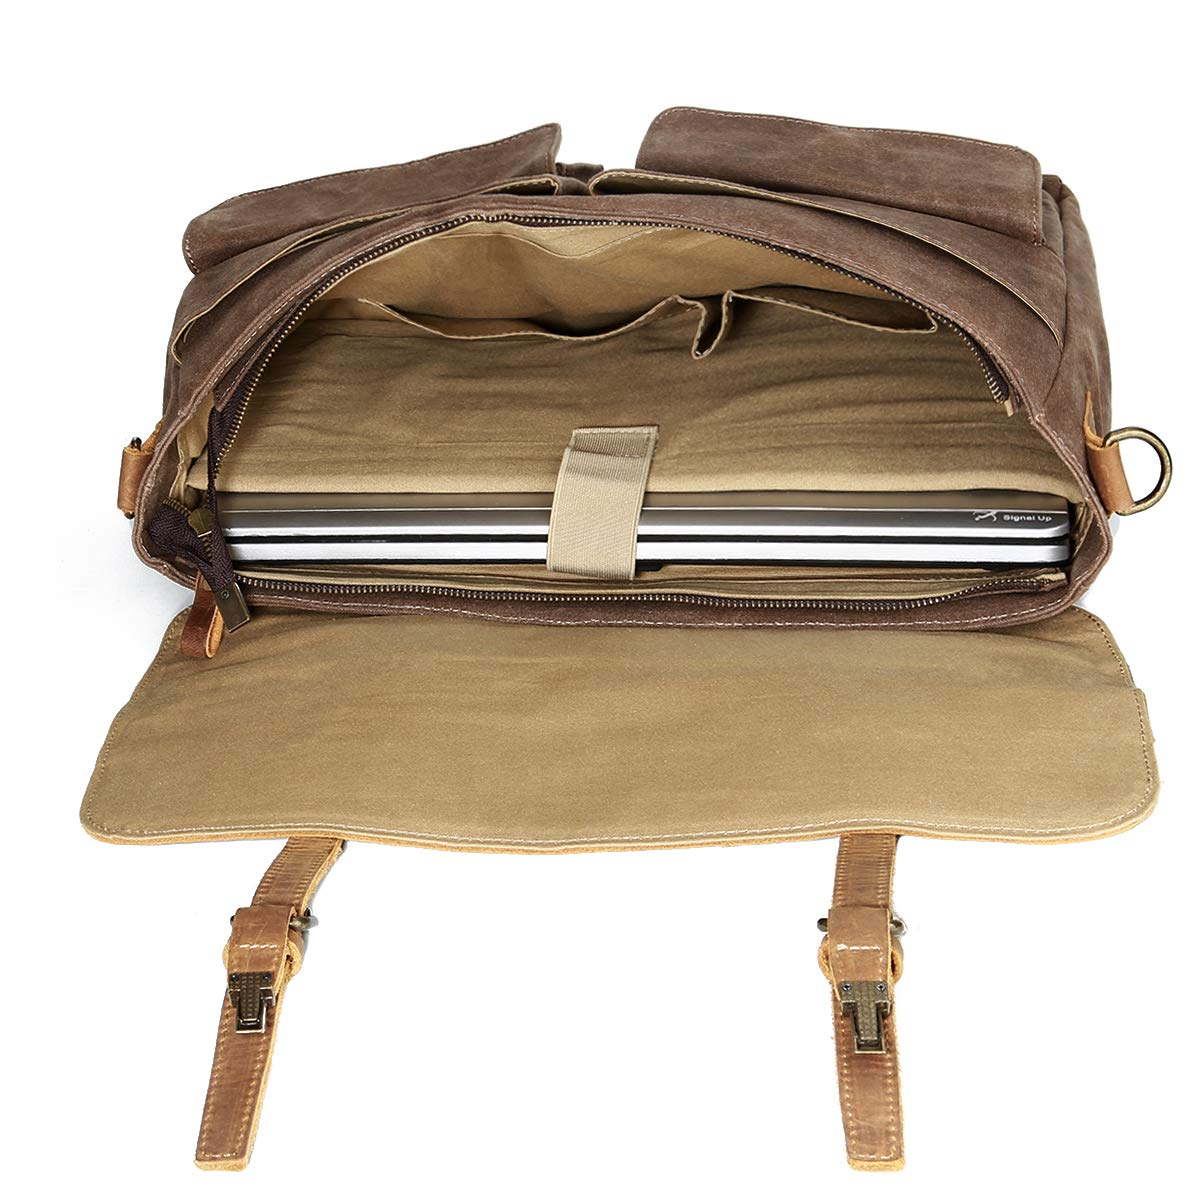 15.6 inch Computer Laptop Bags Water Resistant Travel School Work Bag Coffee Vintage Waxed Canvas Satchel Leather Briefcases Crossbody Shoulder Bags Tocode Large Messenger Bag for Men